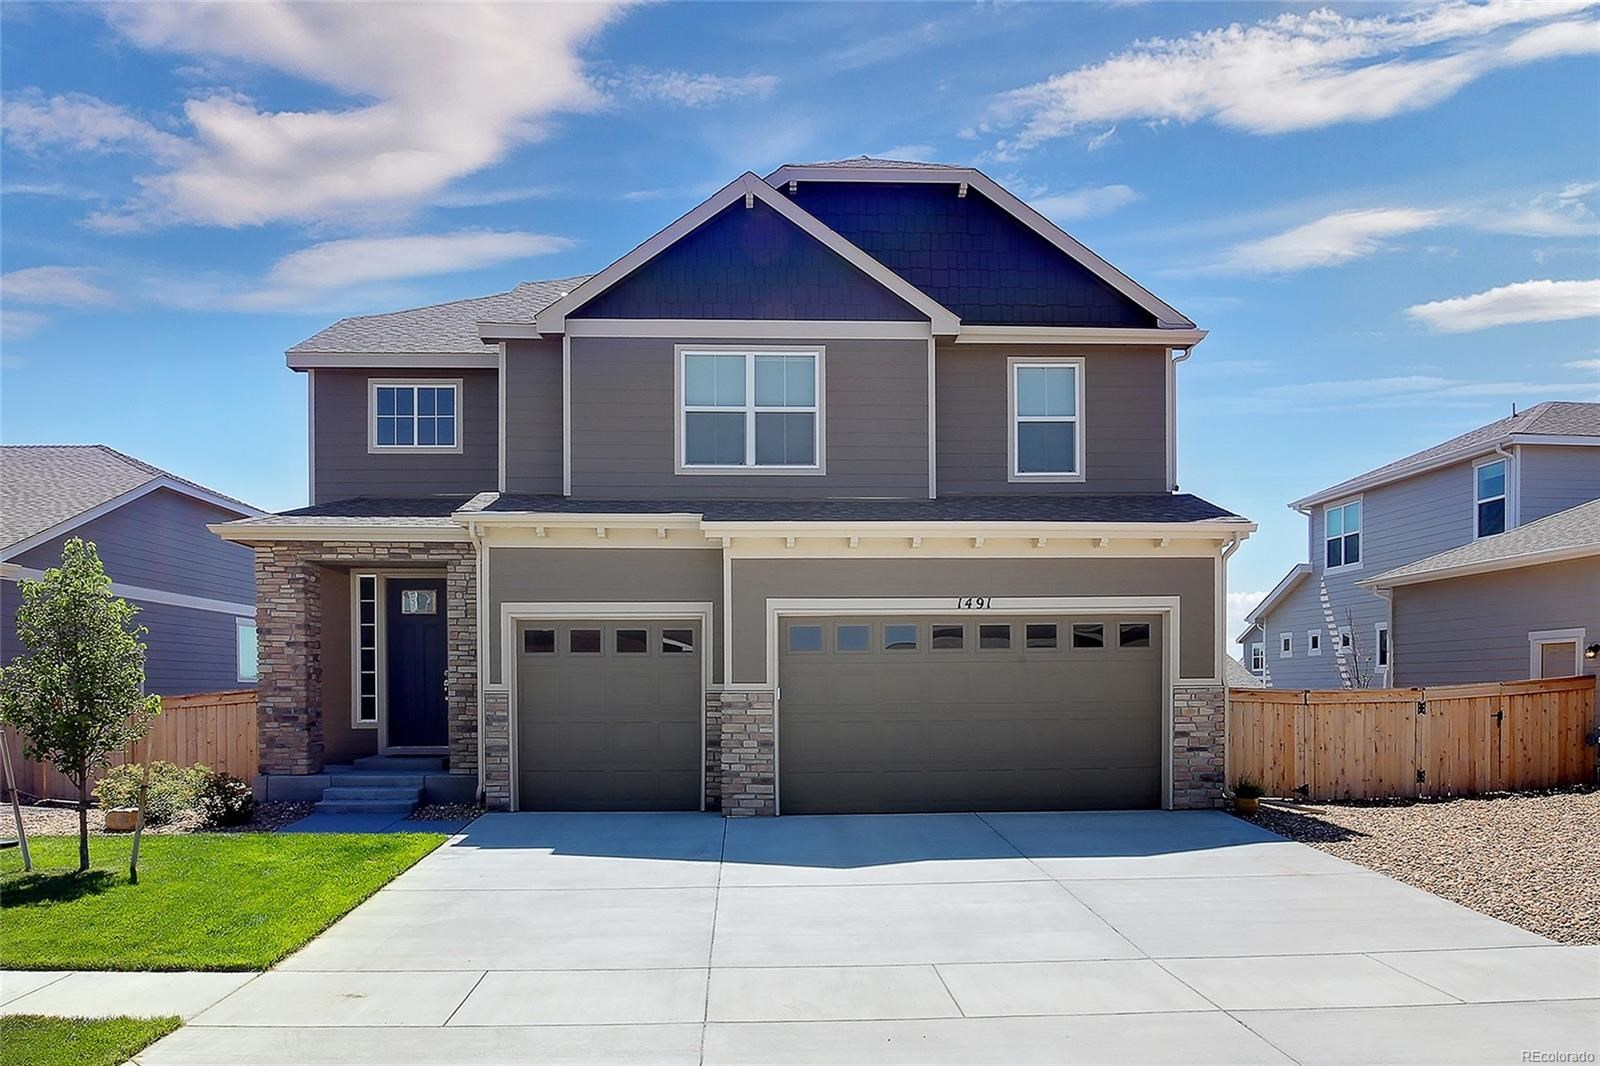 MLS# 4710524 - 1 - 1491 Moraine Valley Drive, Severance, CO 80550